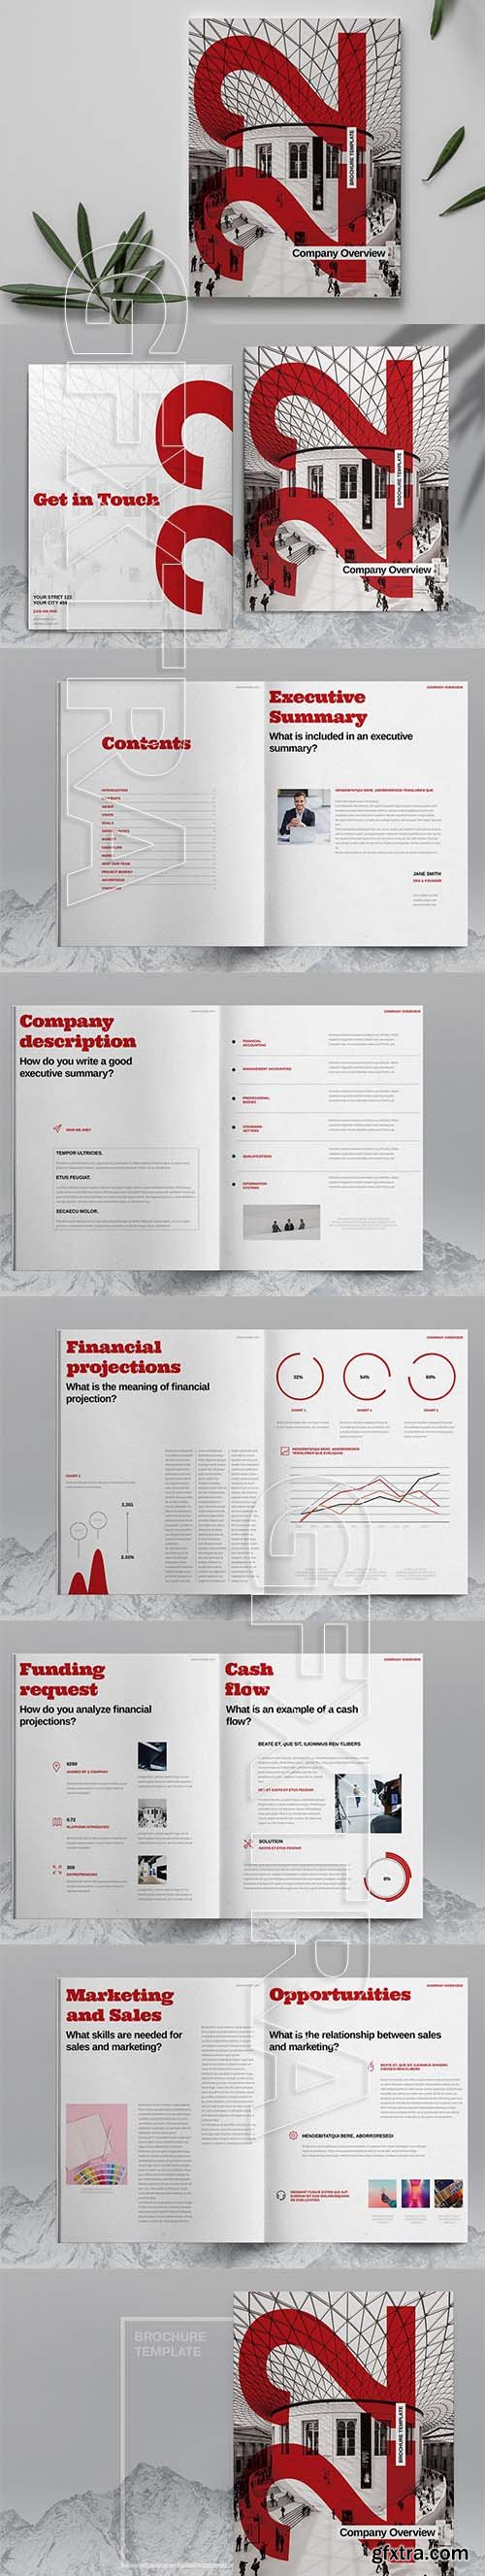 CreativeMarket - Red Brochure Layout Template 6084270